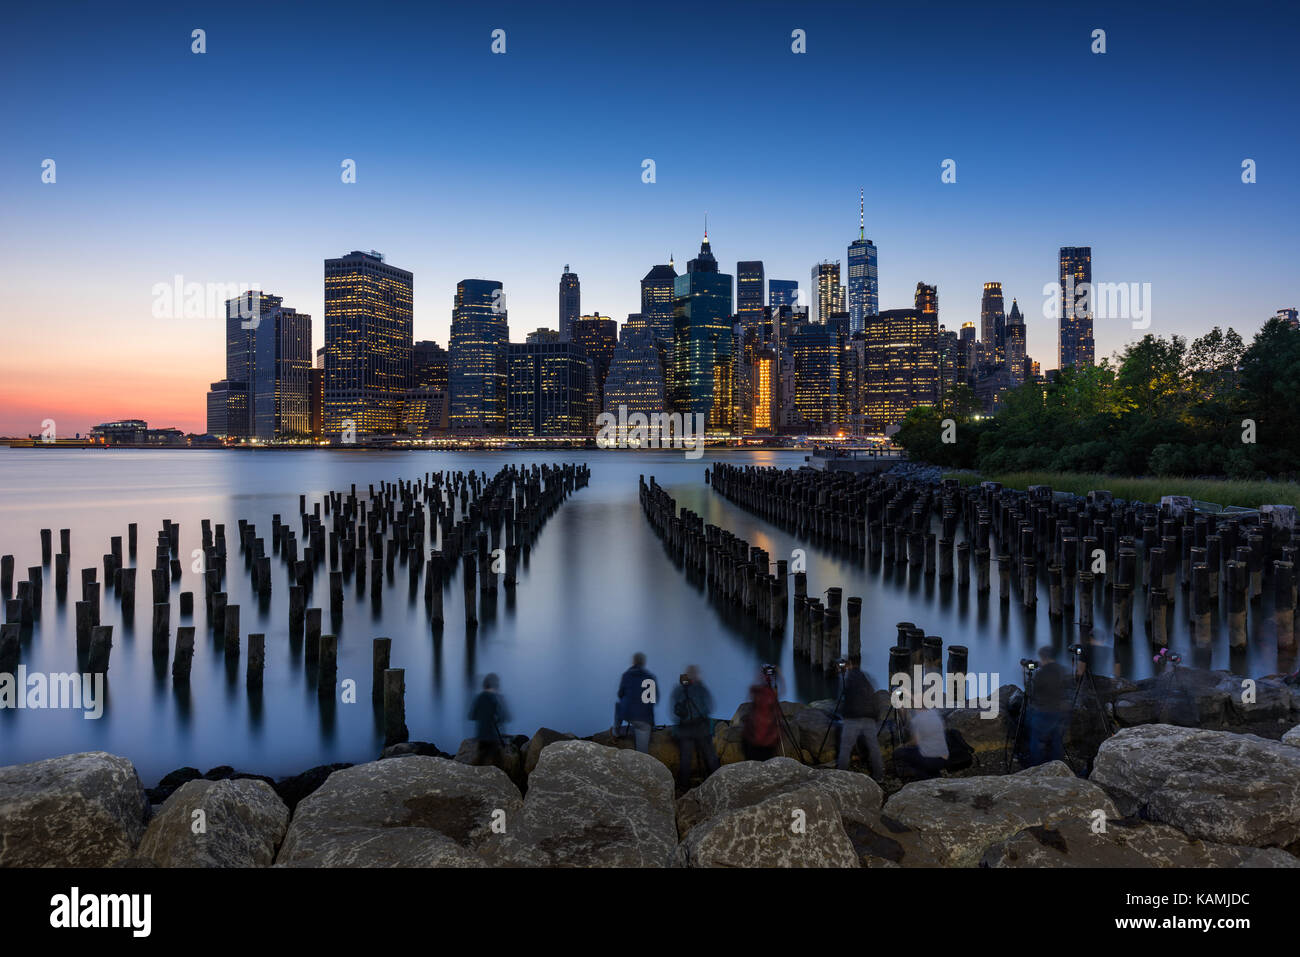 Skyscrapers of Lower Manhattan at sunset and wood pilings from Brooklyn Bridge Park. Manhattan, New York City - Stock Image